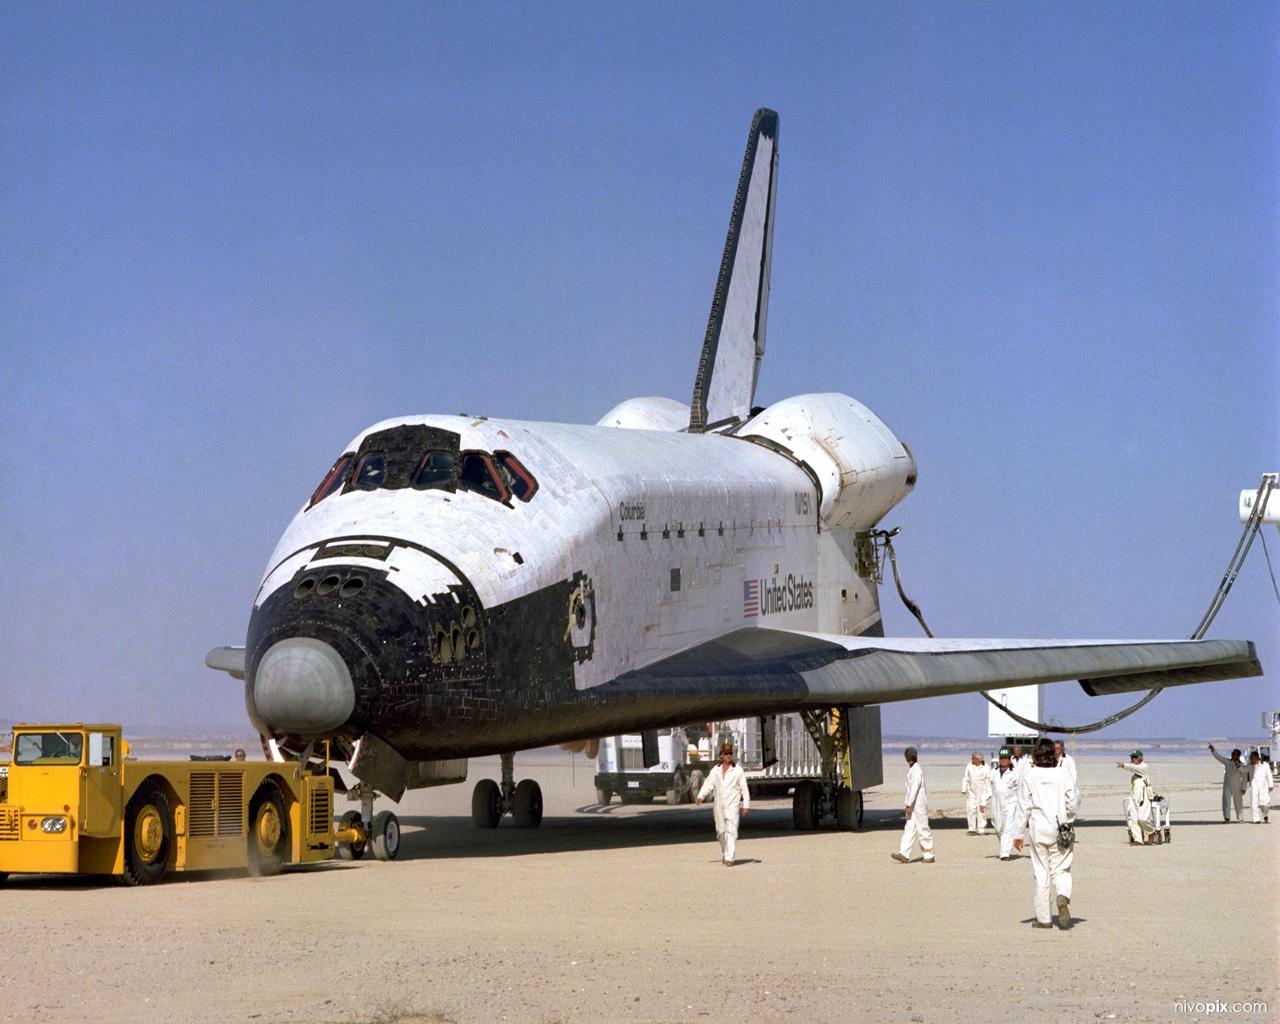 Space Shuttle Columbia after landing to complete its first orbital mission